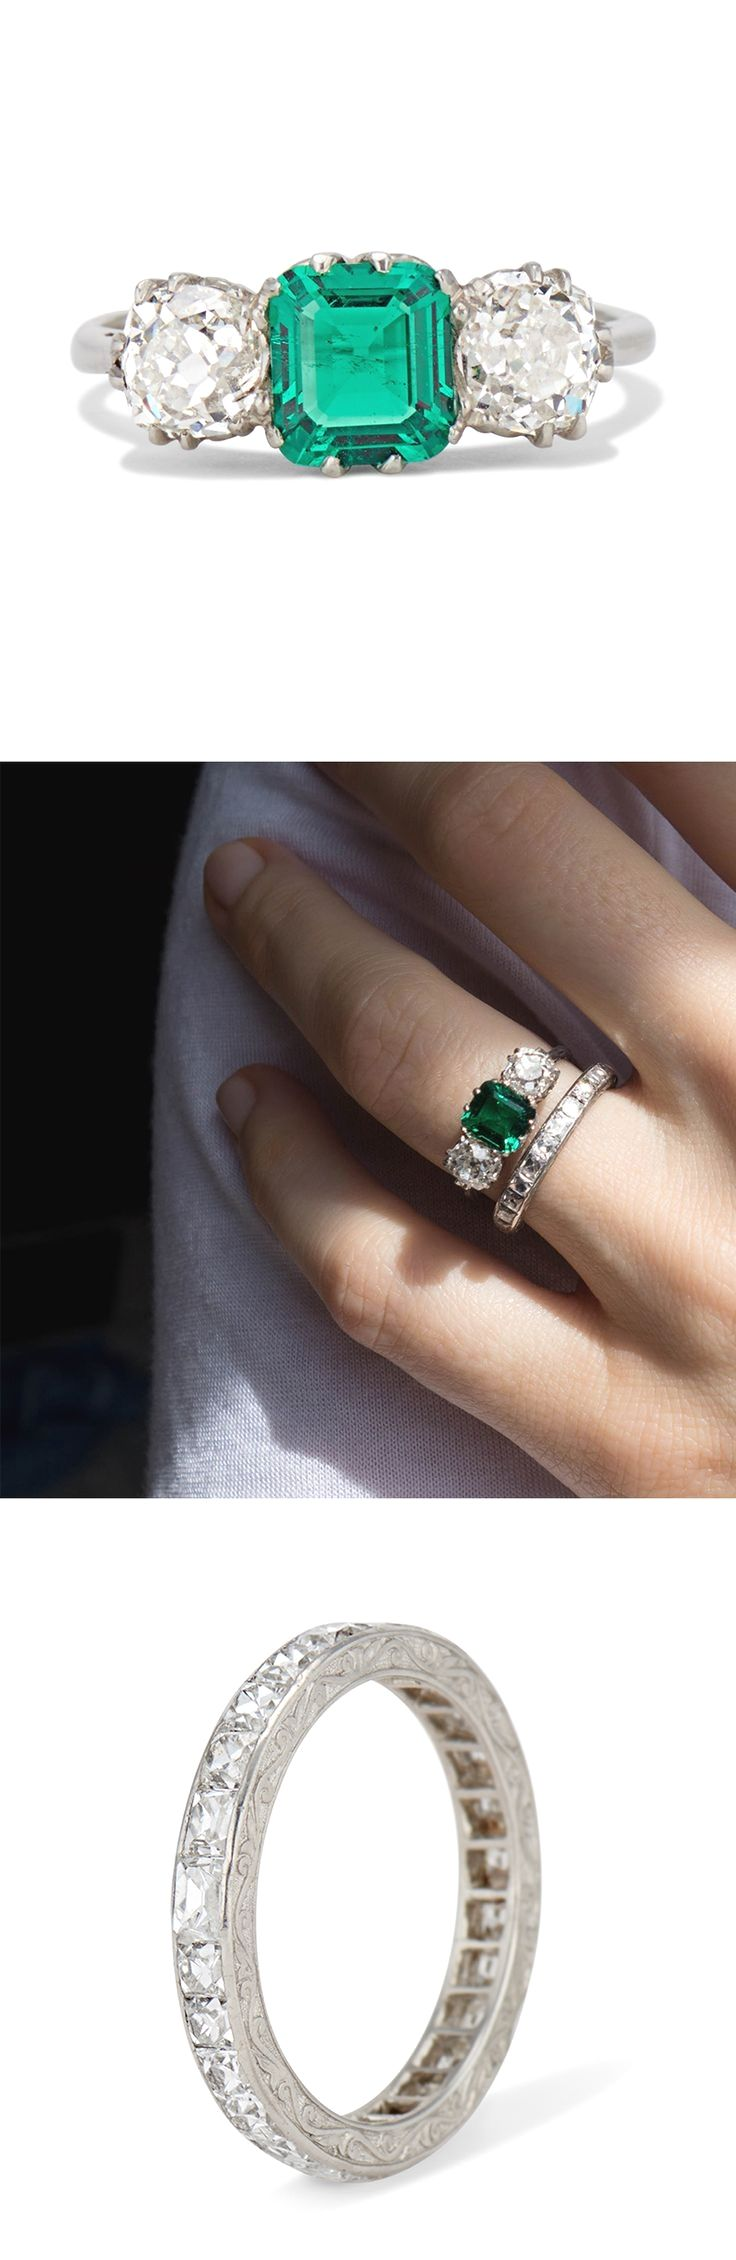 Vintage Early Art Deco columbian emerald engagement ring made in platinum worn with our antique Art Deco French cut diamond eternity band.